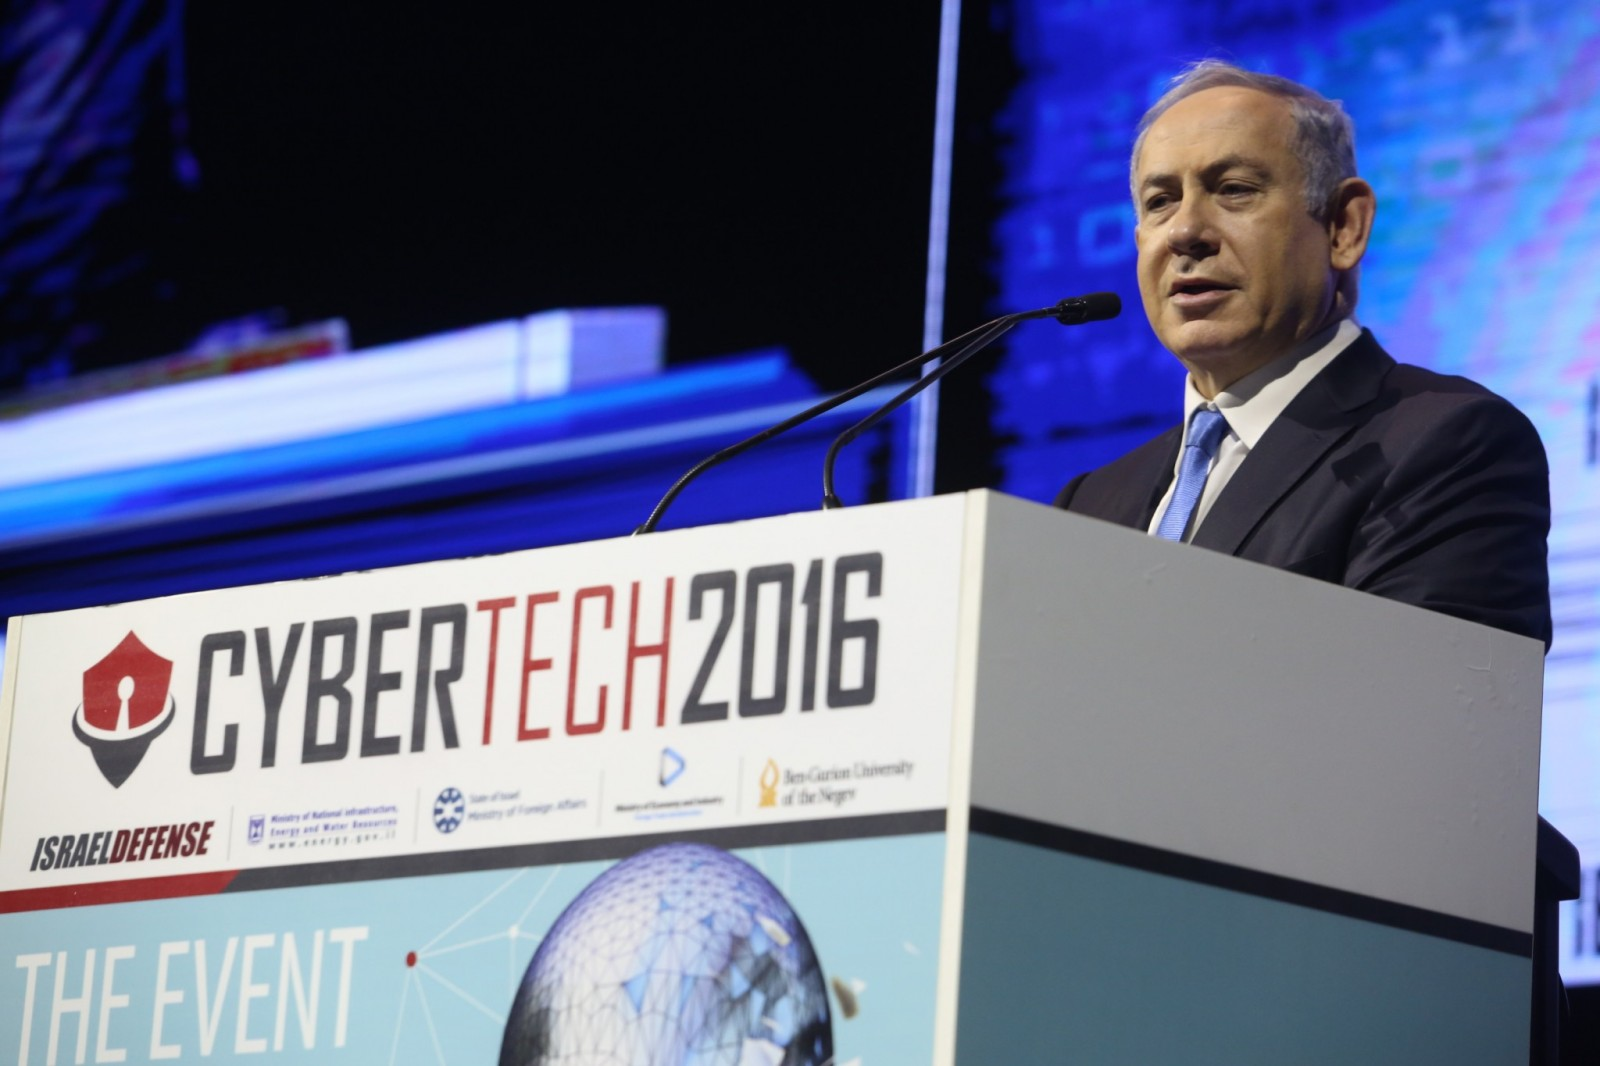 Prime Minister Netanyahu addresses Cybertech 2016. Photo by Gilad Kavalerchik